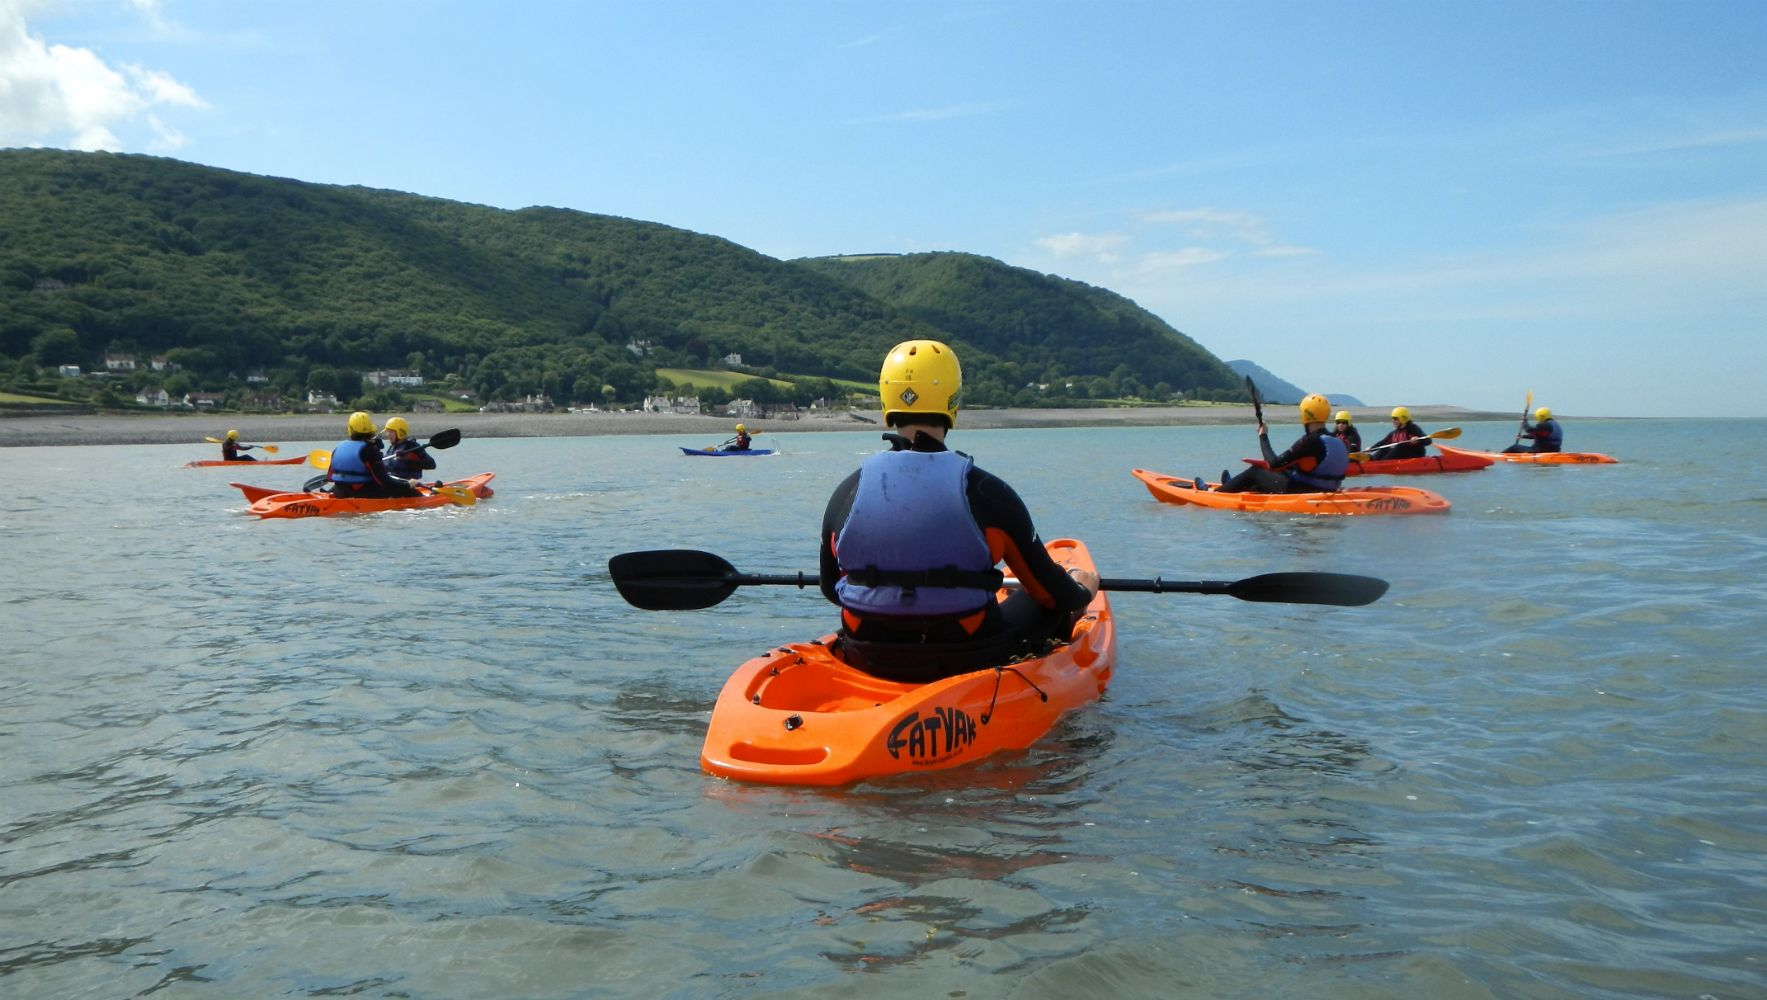 Kayaking in Porlock